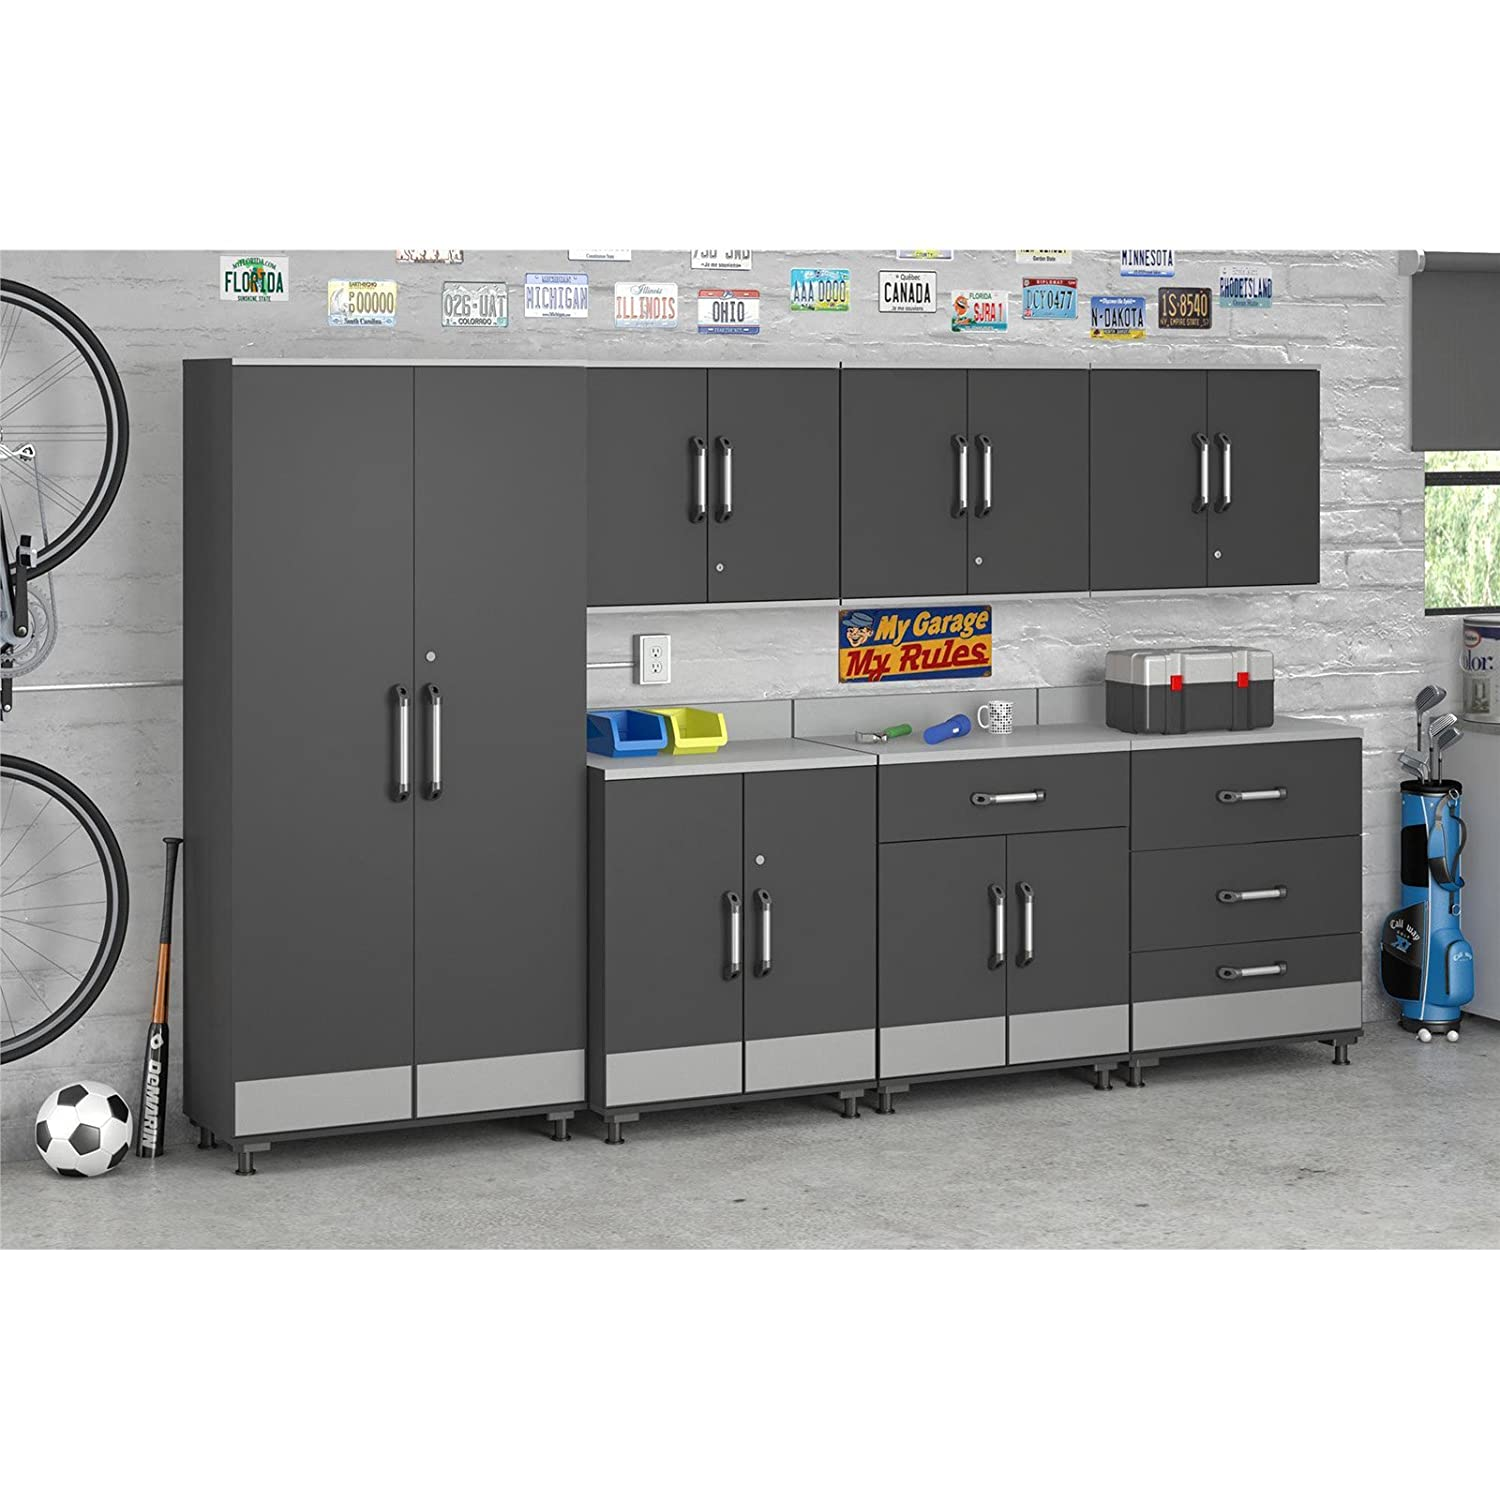 amazoncom altra furniture systembuild boss 2 door base garage cabinet kitchen u0026 dining - Garage Wall Cabinets